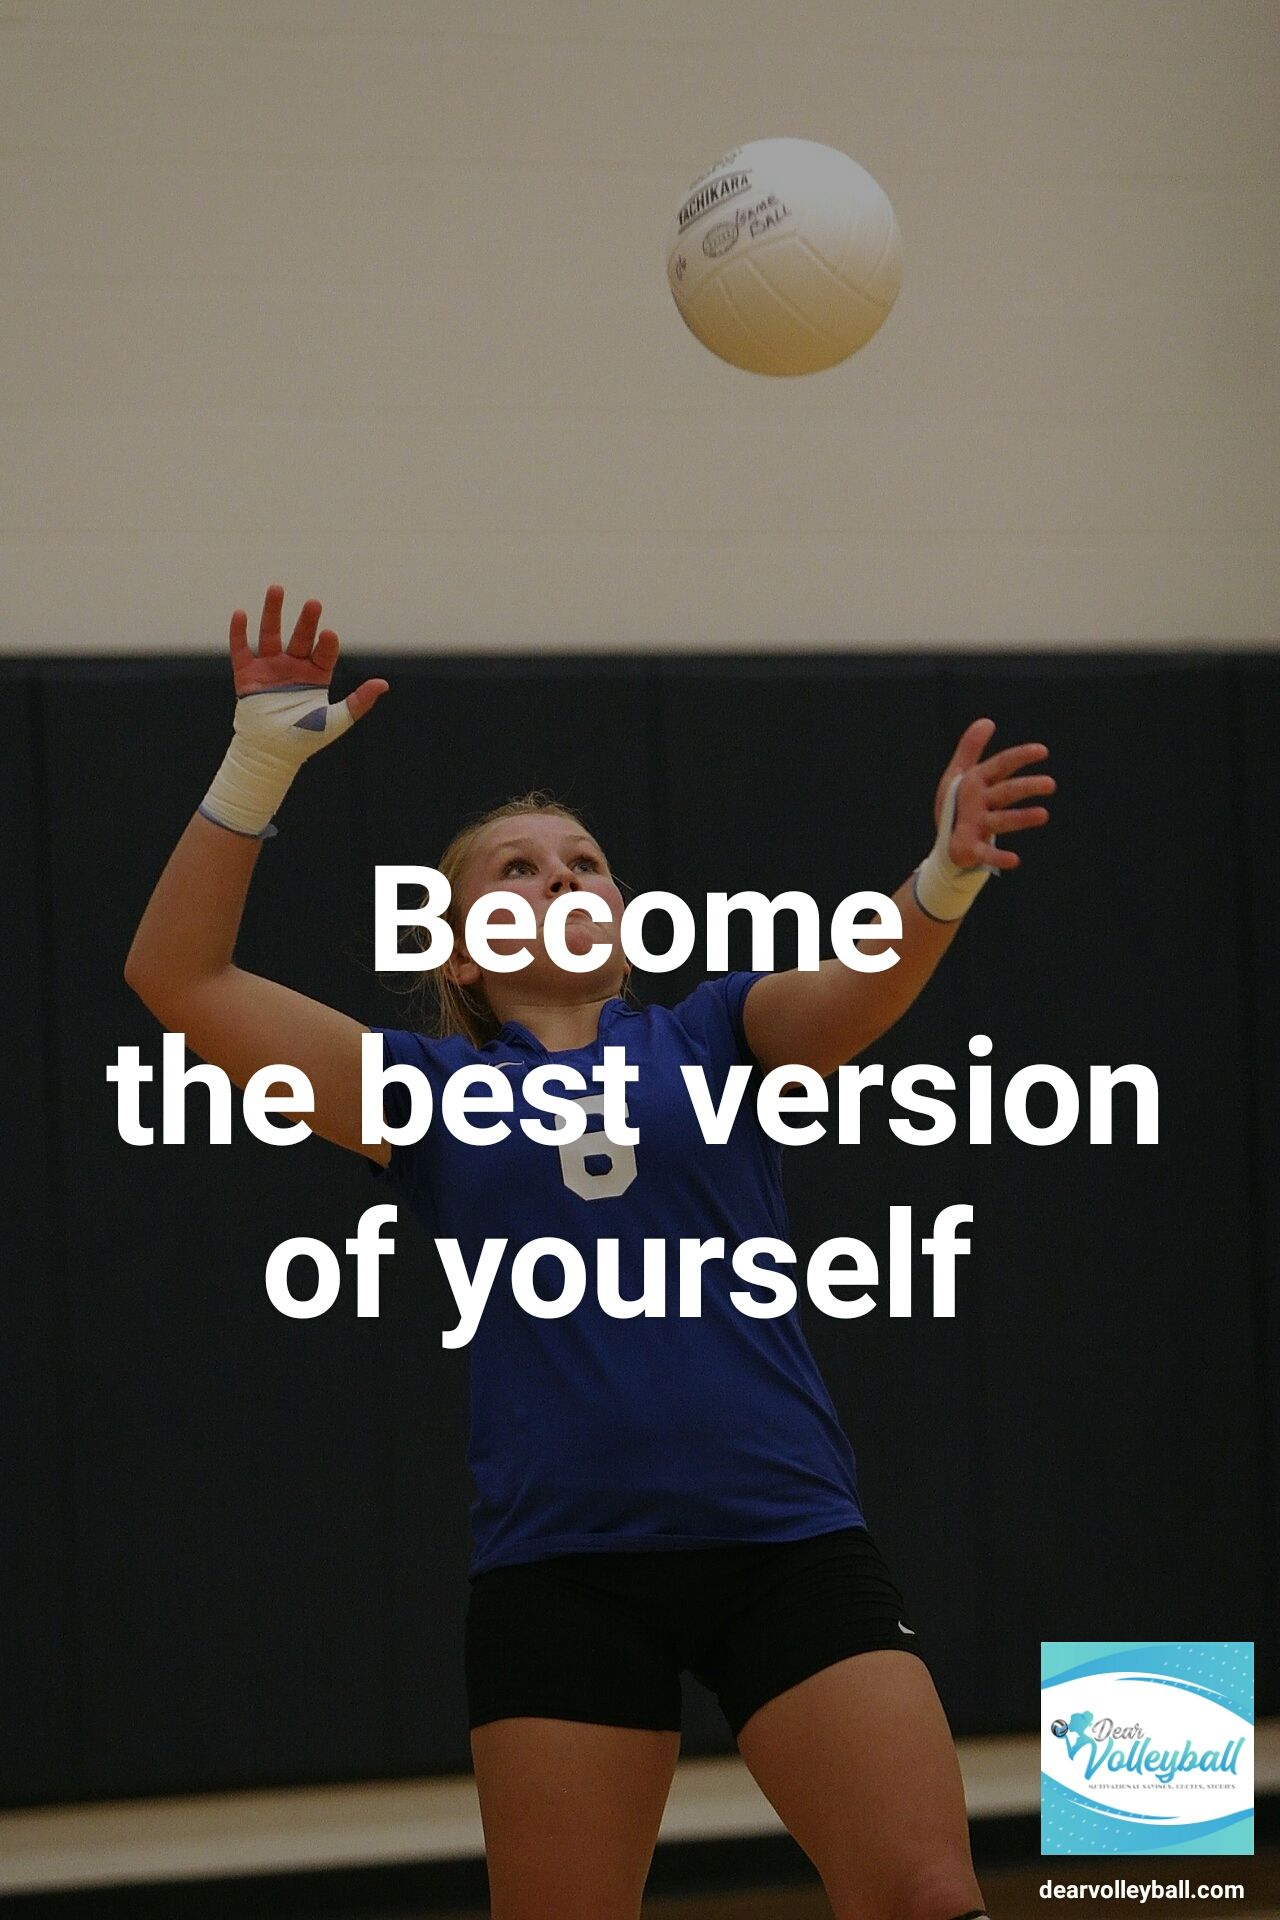 54 Short Inspirational Quotes For A Players Long Term Inspiration Inspirational Volleyball Quotes Volleyball Quotes Inspirational Sports Quotes